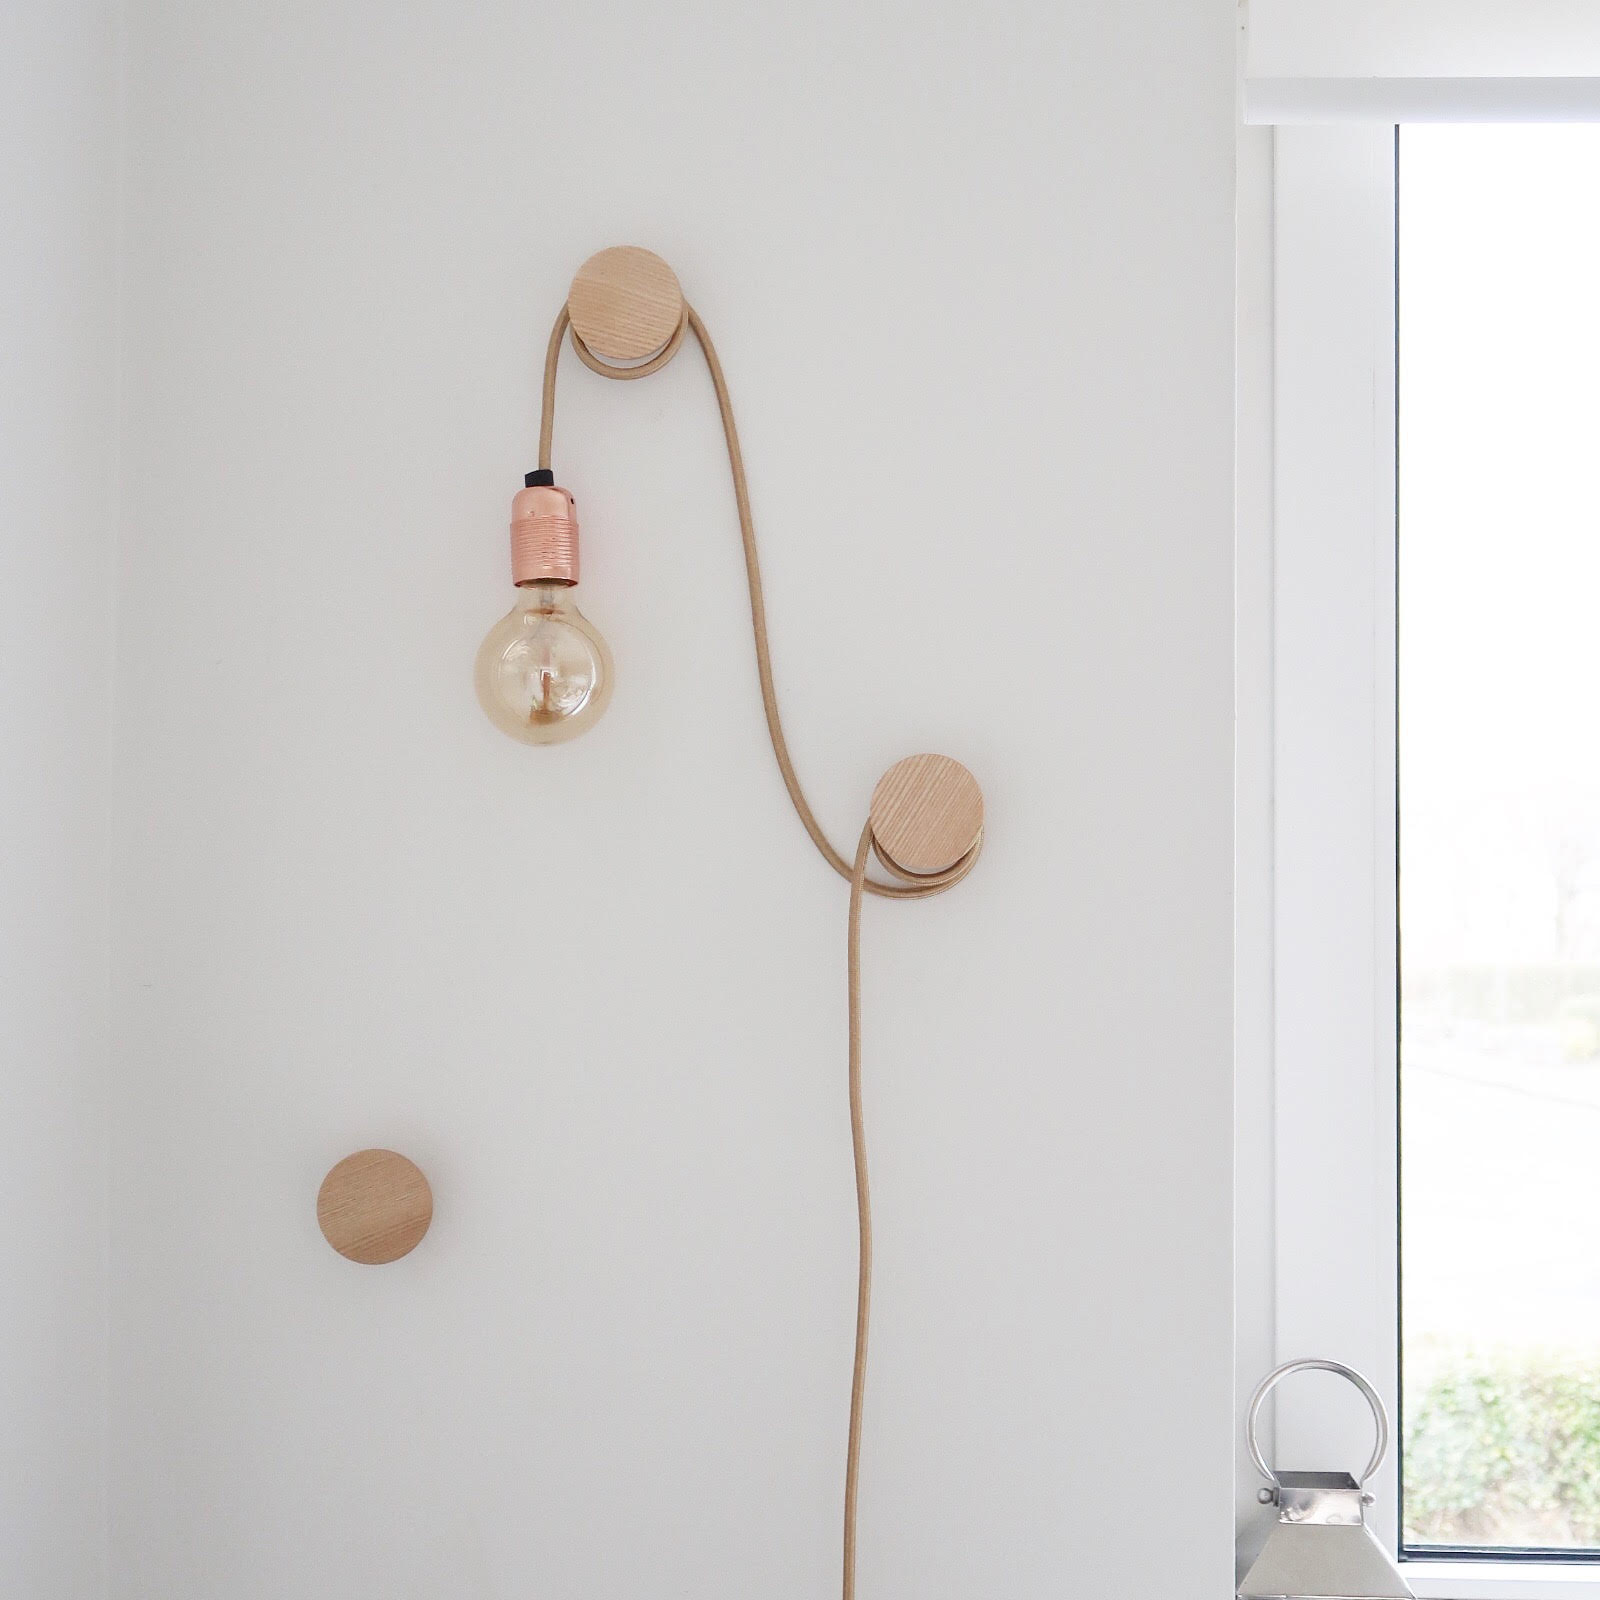 Light Feature Hanging Bulb on Wall Hooks